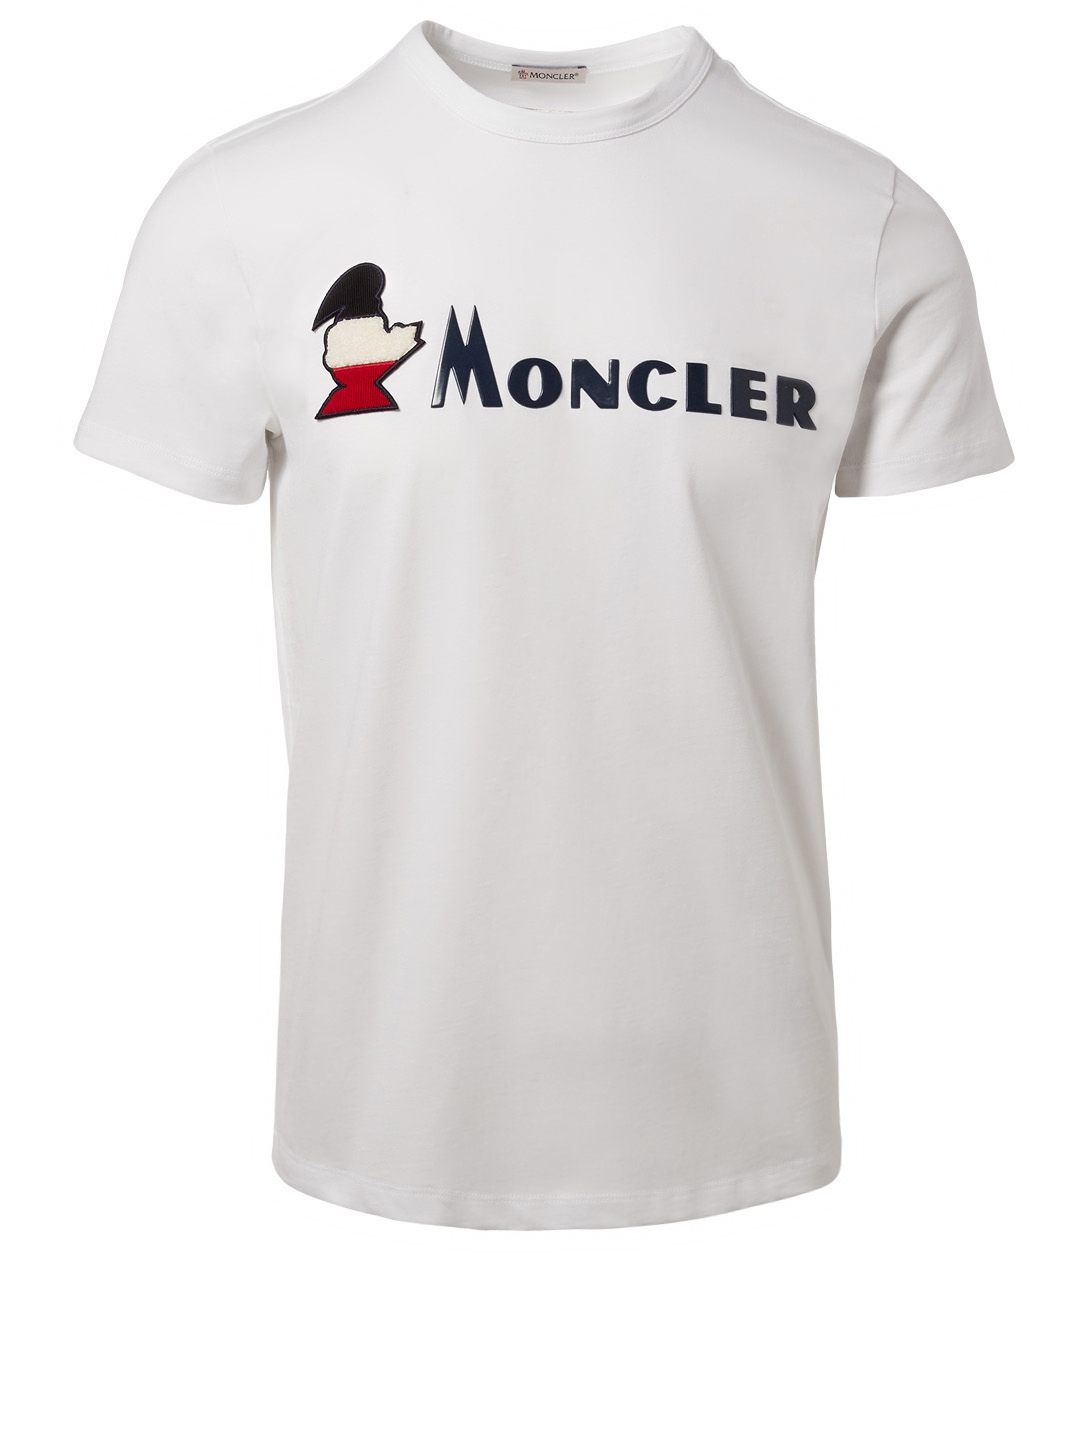 MONCLER Embroidered Duck Logo T-Shirt Men's White